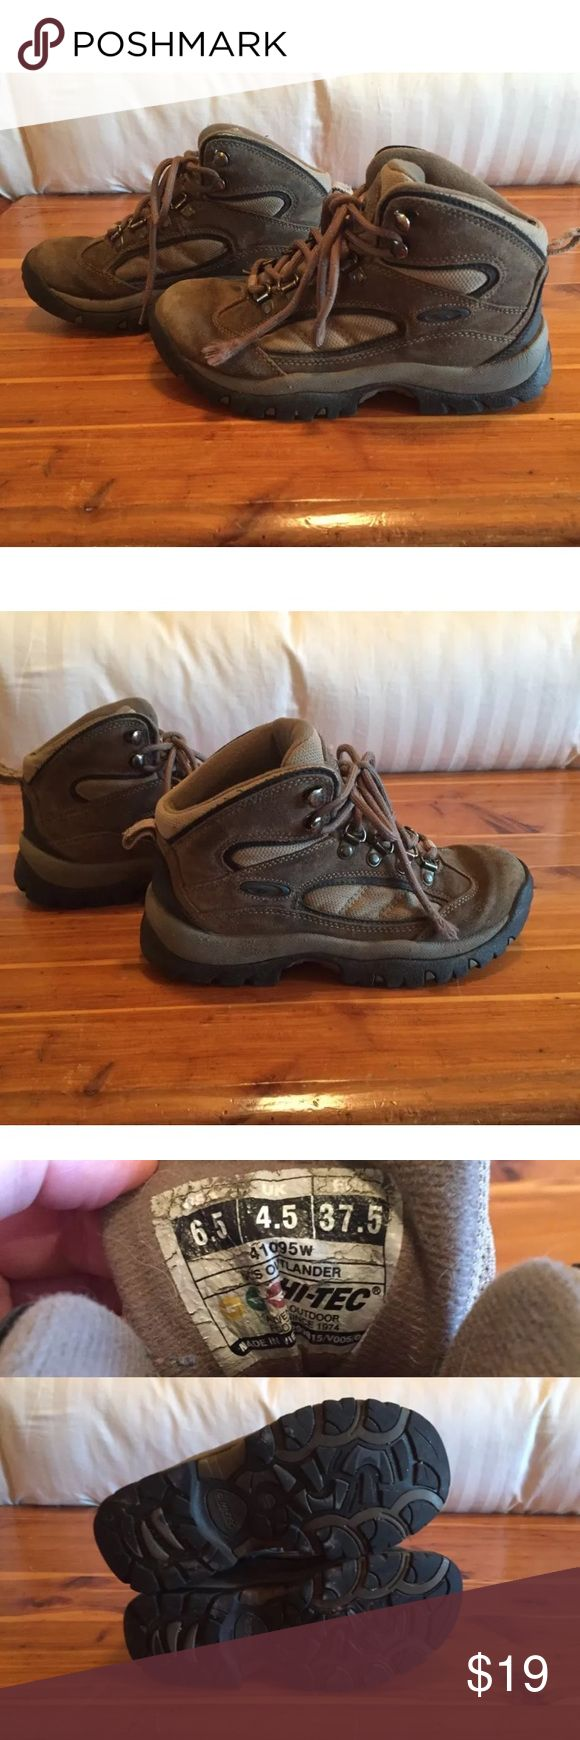 Hi-Tec Outlander Hiking or Work Boots Great pair of hiking boots. Well-loved but lots of love left! Hi-Tec Shoes Winter & Rain Boots